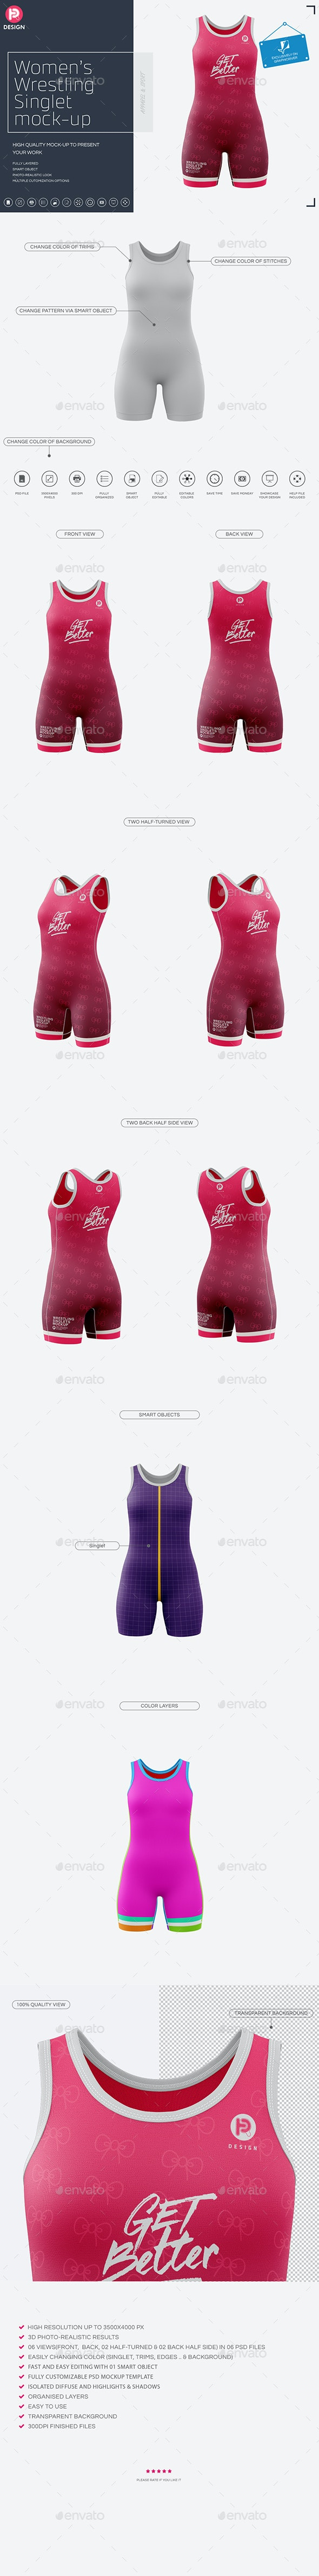 Women's Wrestling Singlet Mockup - Miscellaneous Product Mock-Ups